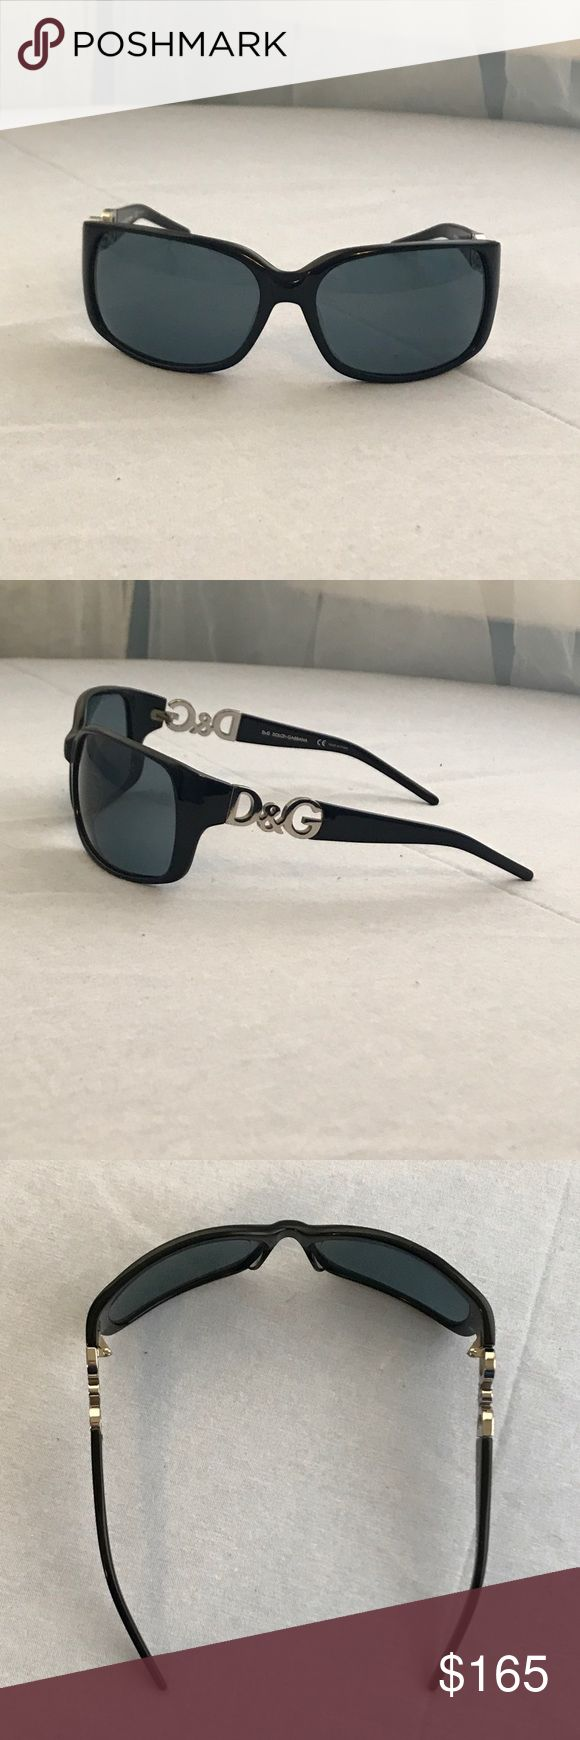 Dolce and Gabbana Sunglasses Dolce and Gabbana Sunglasses Black Frames and Lenses.  This curve hugging silhouette with distinct silver DG logo melds contemporary elegance with high fashion accessories.  Excellent Used Condition, case included. Dolce & Gabbana Accessories Sunglasses